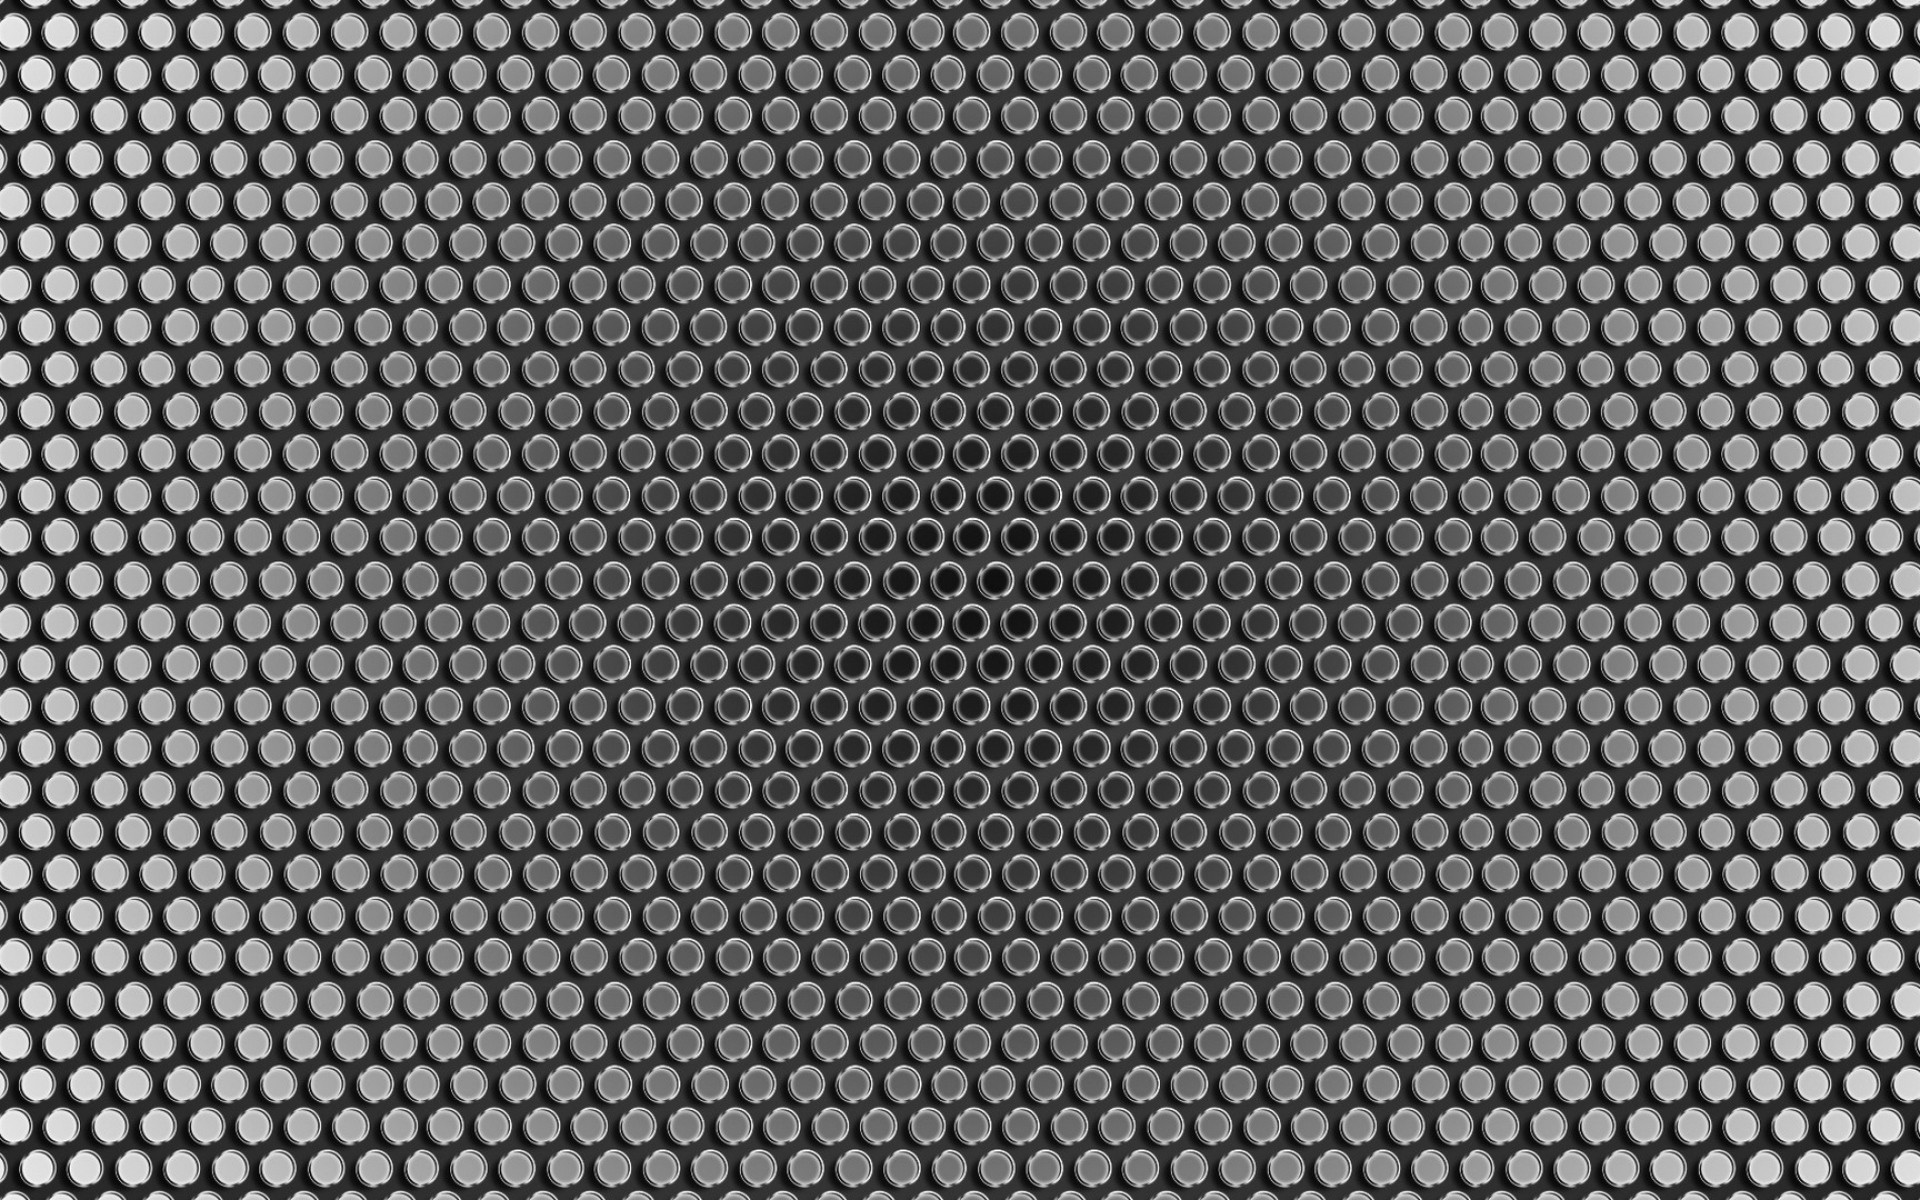 Wallpaper mesh, light, background, metal, texture